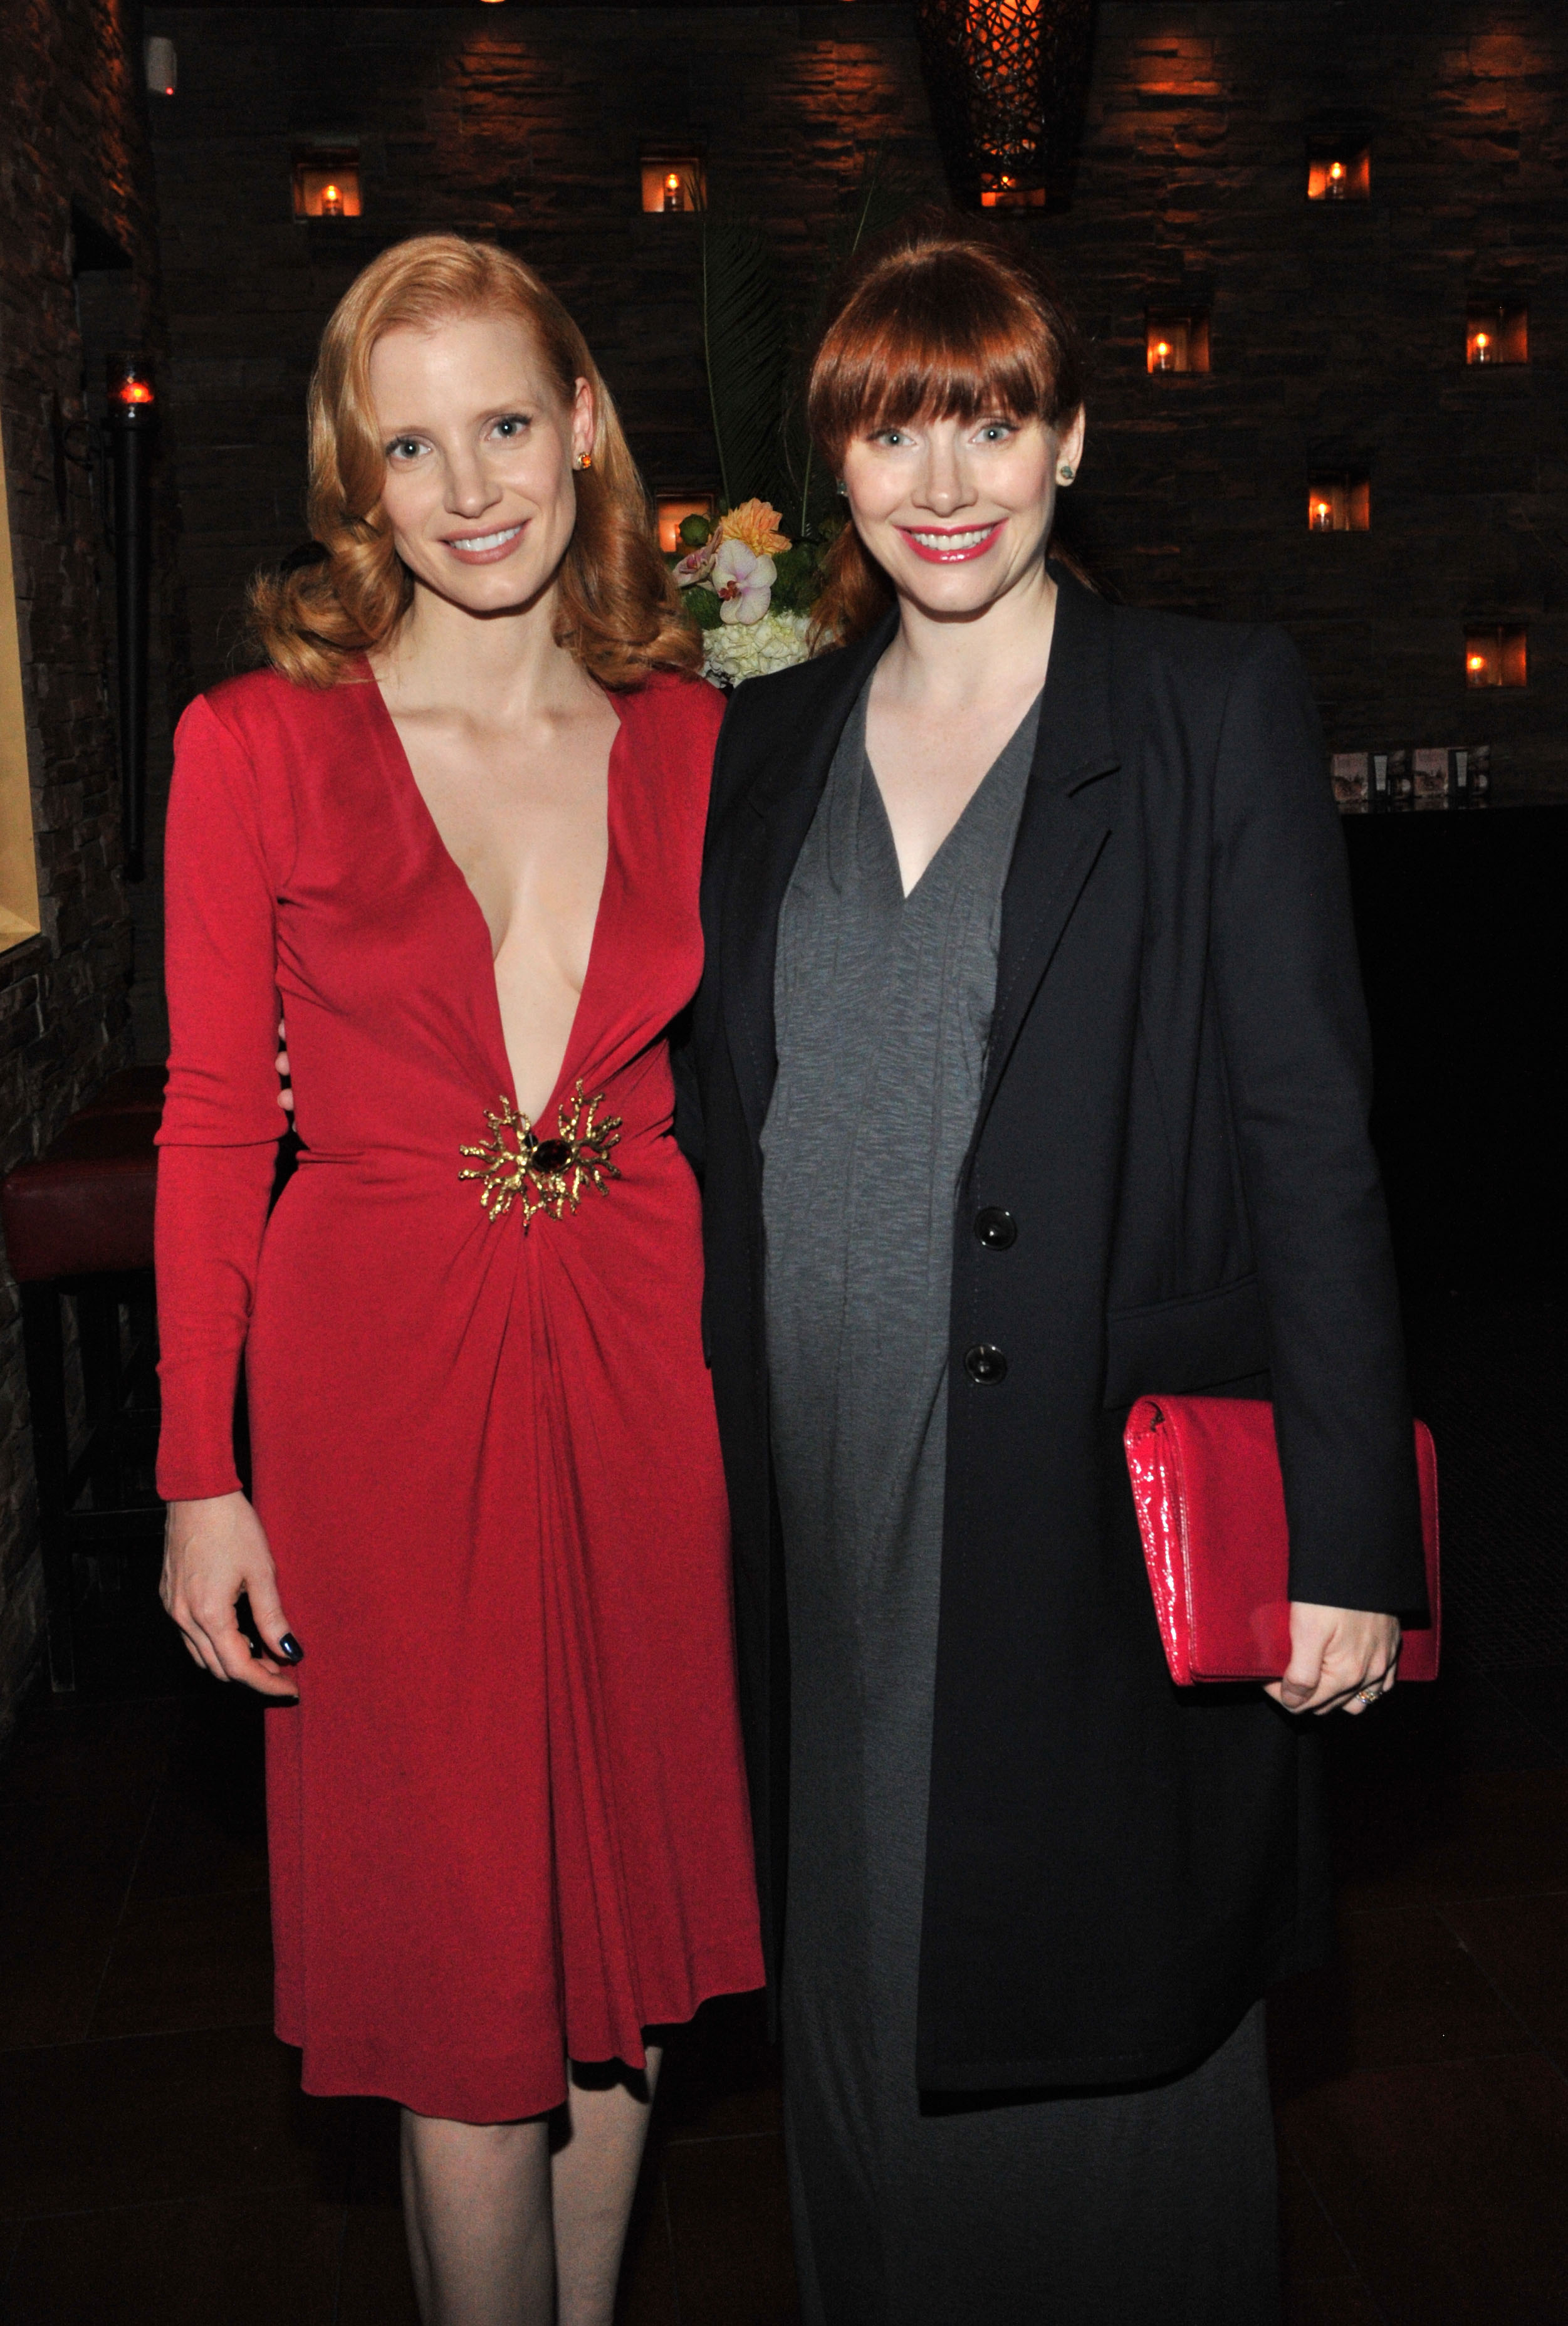 Jessica Chastain and Bryce Dallas Howard arrives at Sony Pictures Classics 20th Anniversary Party at the 2011 Toronto International Film Festival on Sept. 11, 2011 in Toronto.